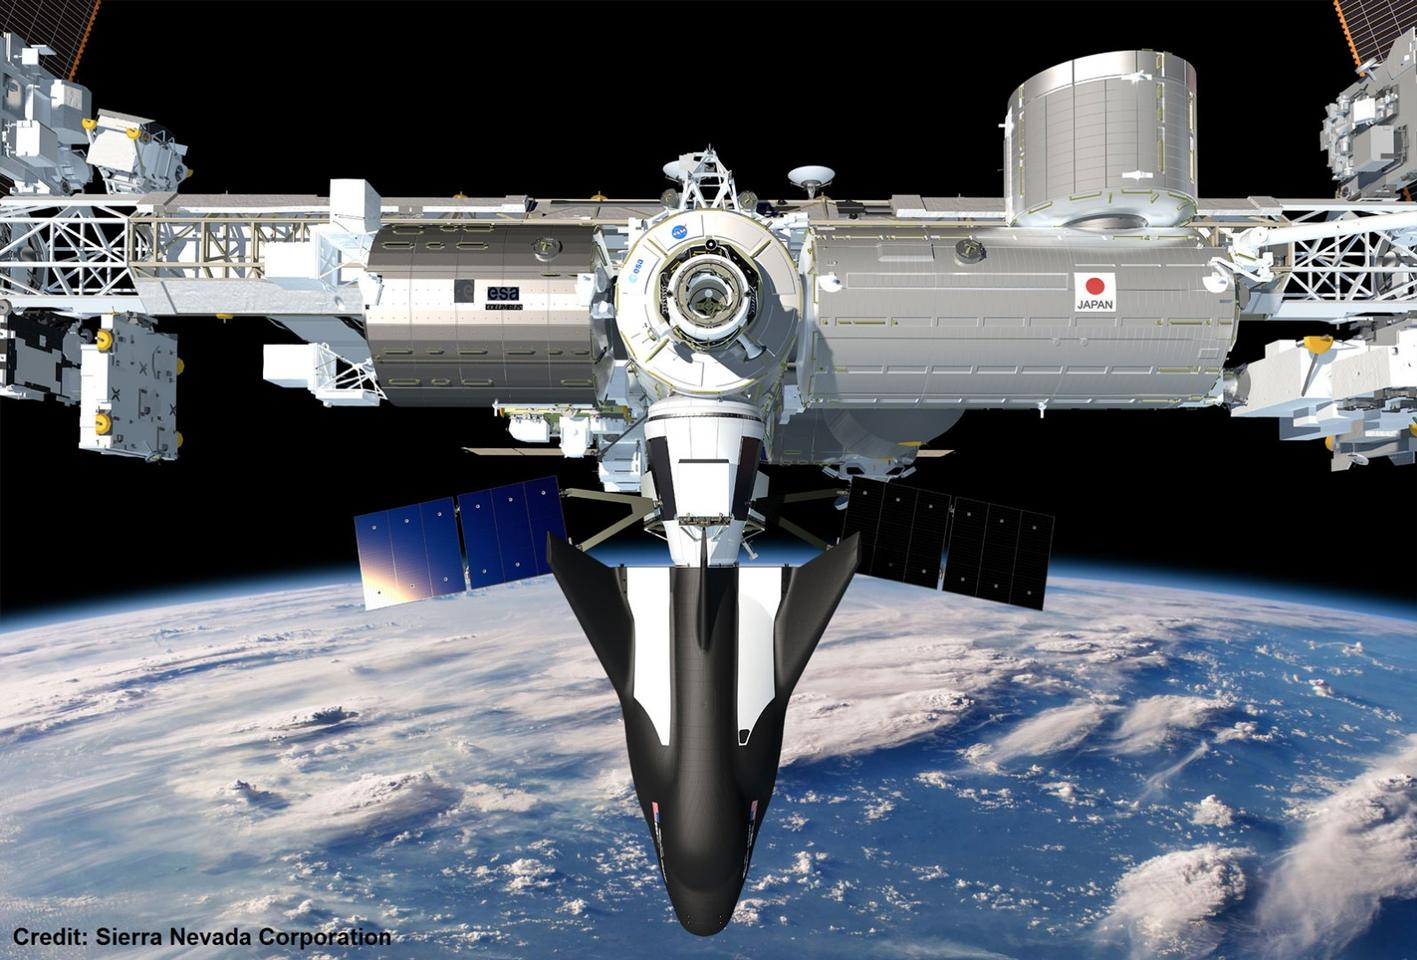 Artist's rendering of the Dream Chaser spacecraft docked on the ISS